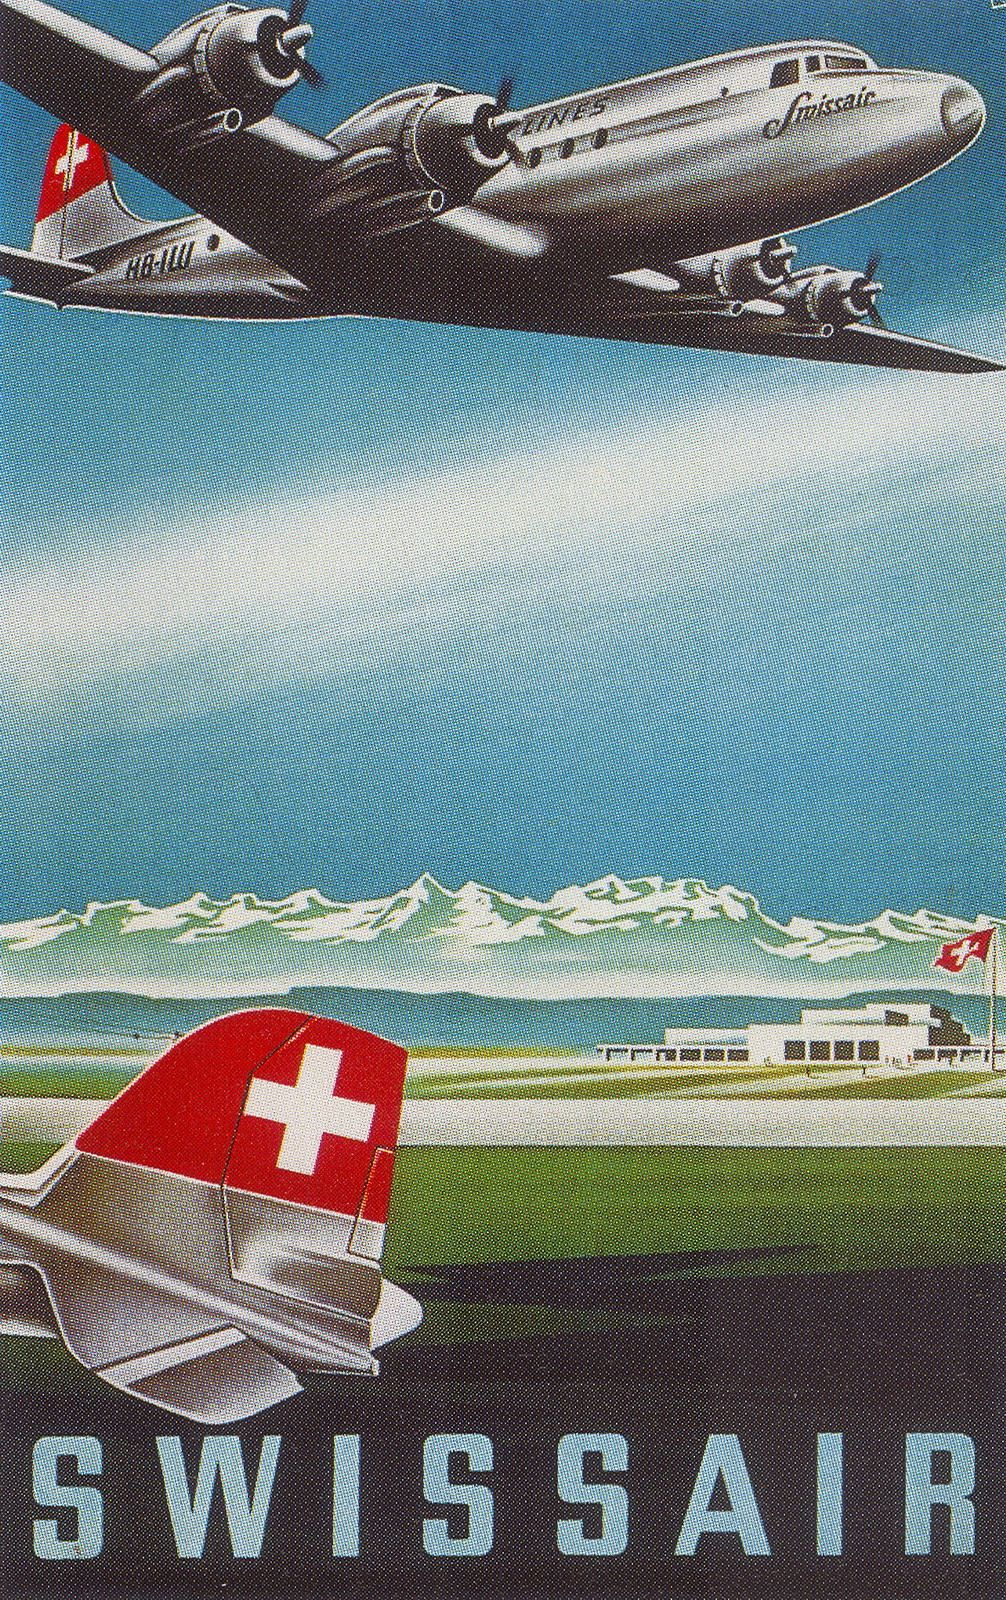 more swissair from fabulous blog, too